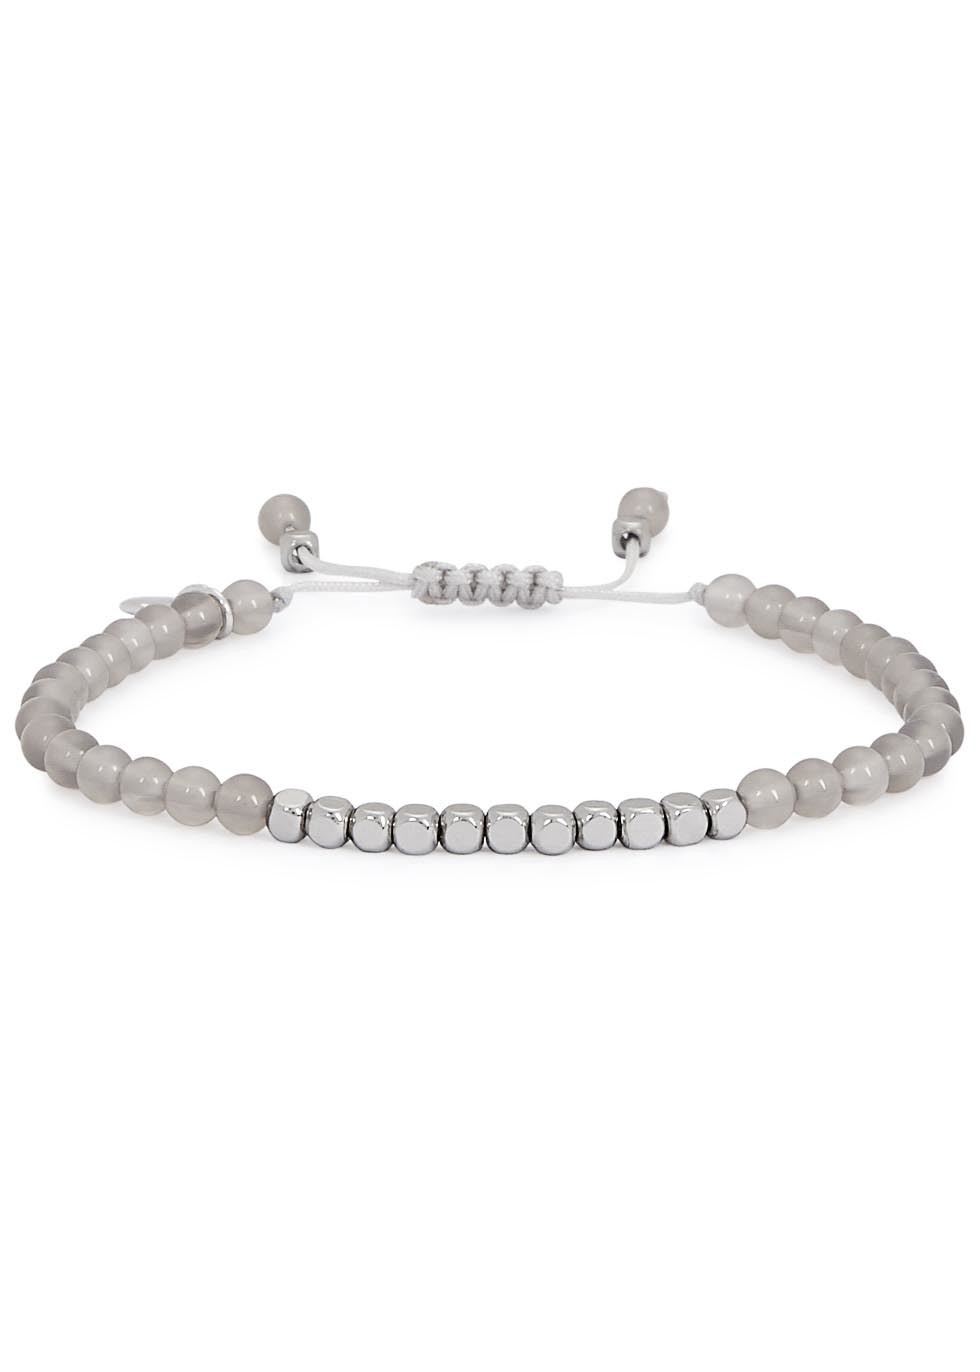 Marylebone Light Grey Quartz Beaded Bracelet - predominant colour: light grey; occasions: casual, creative work; style: friendship/tie; size: standard; material: fabric/cotton; finish: plain; embellishment: beading; season: a/w 2016